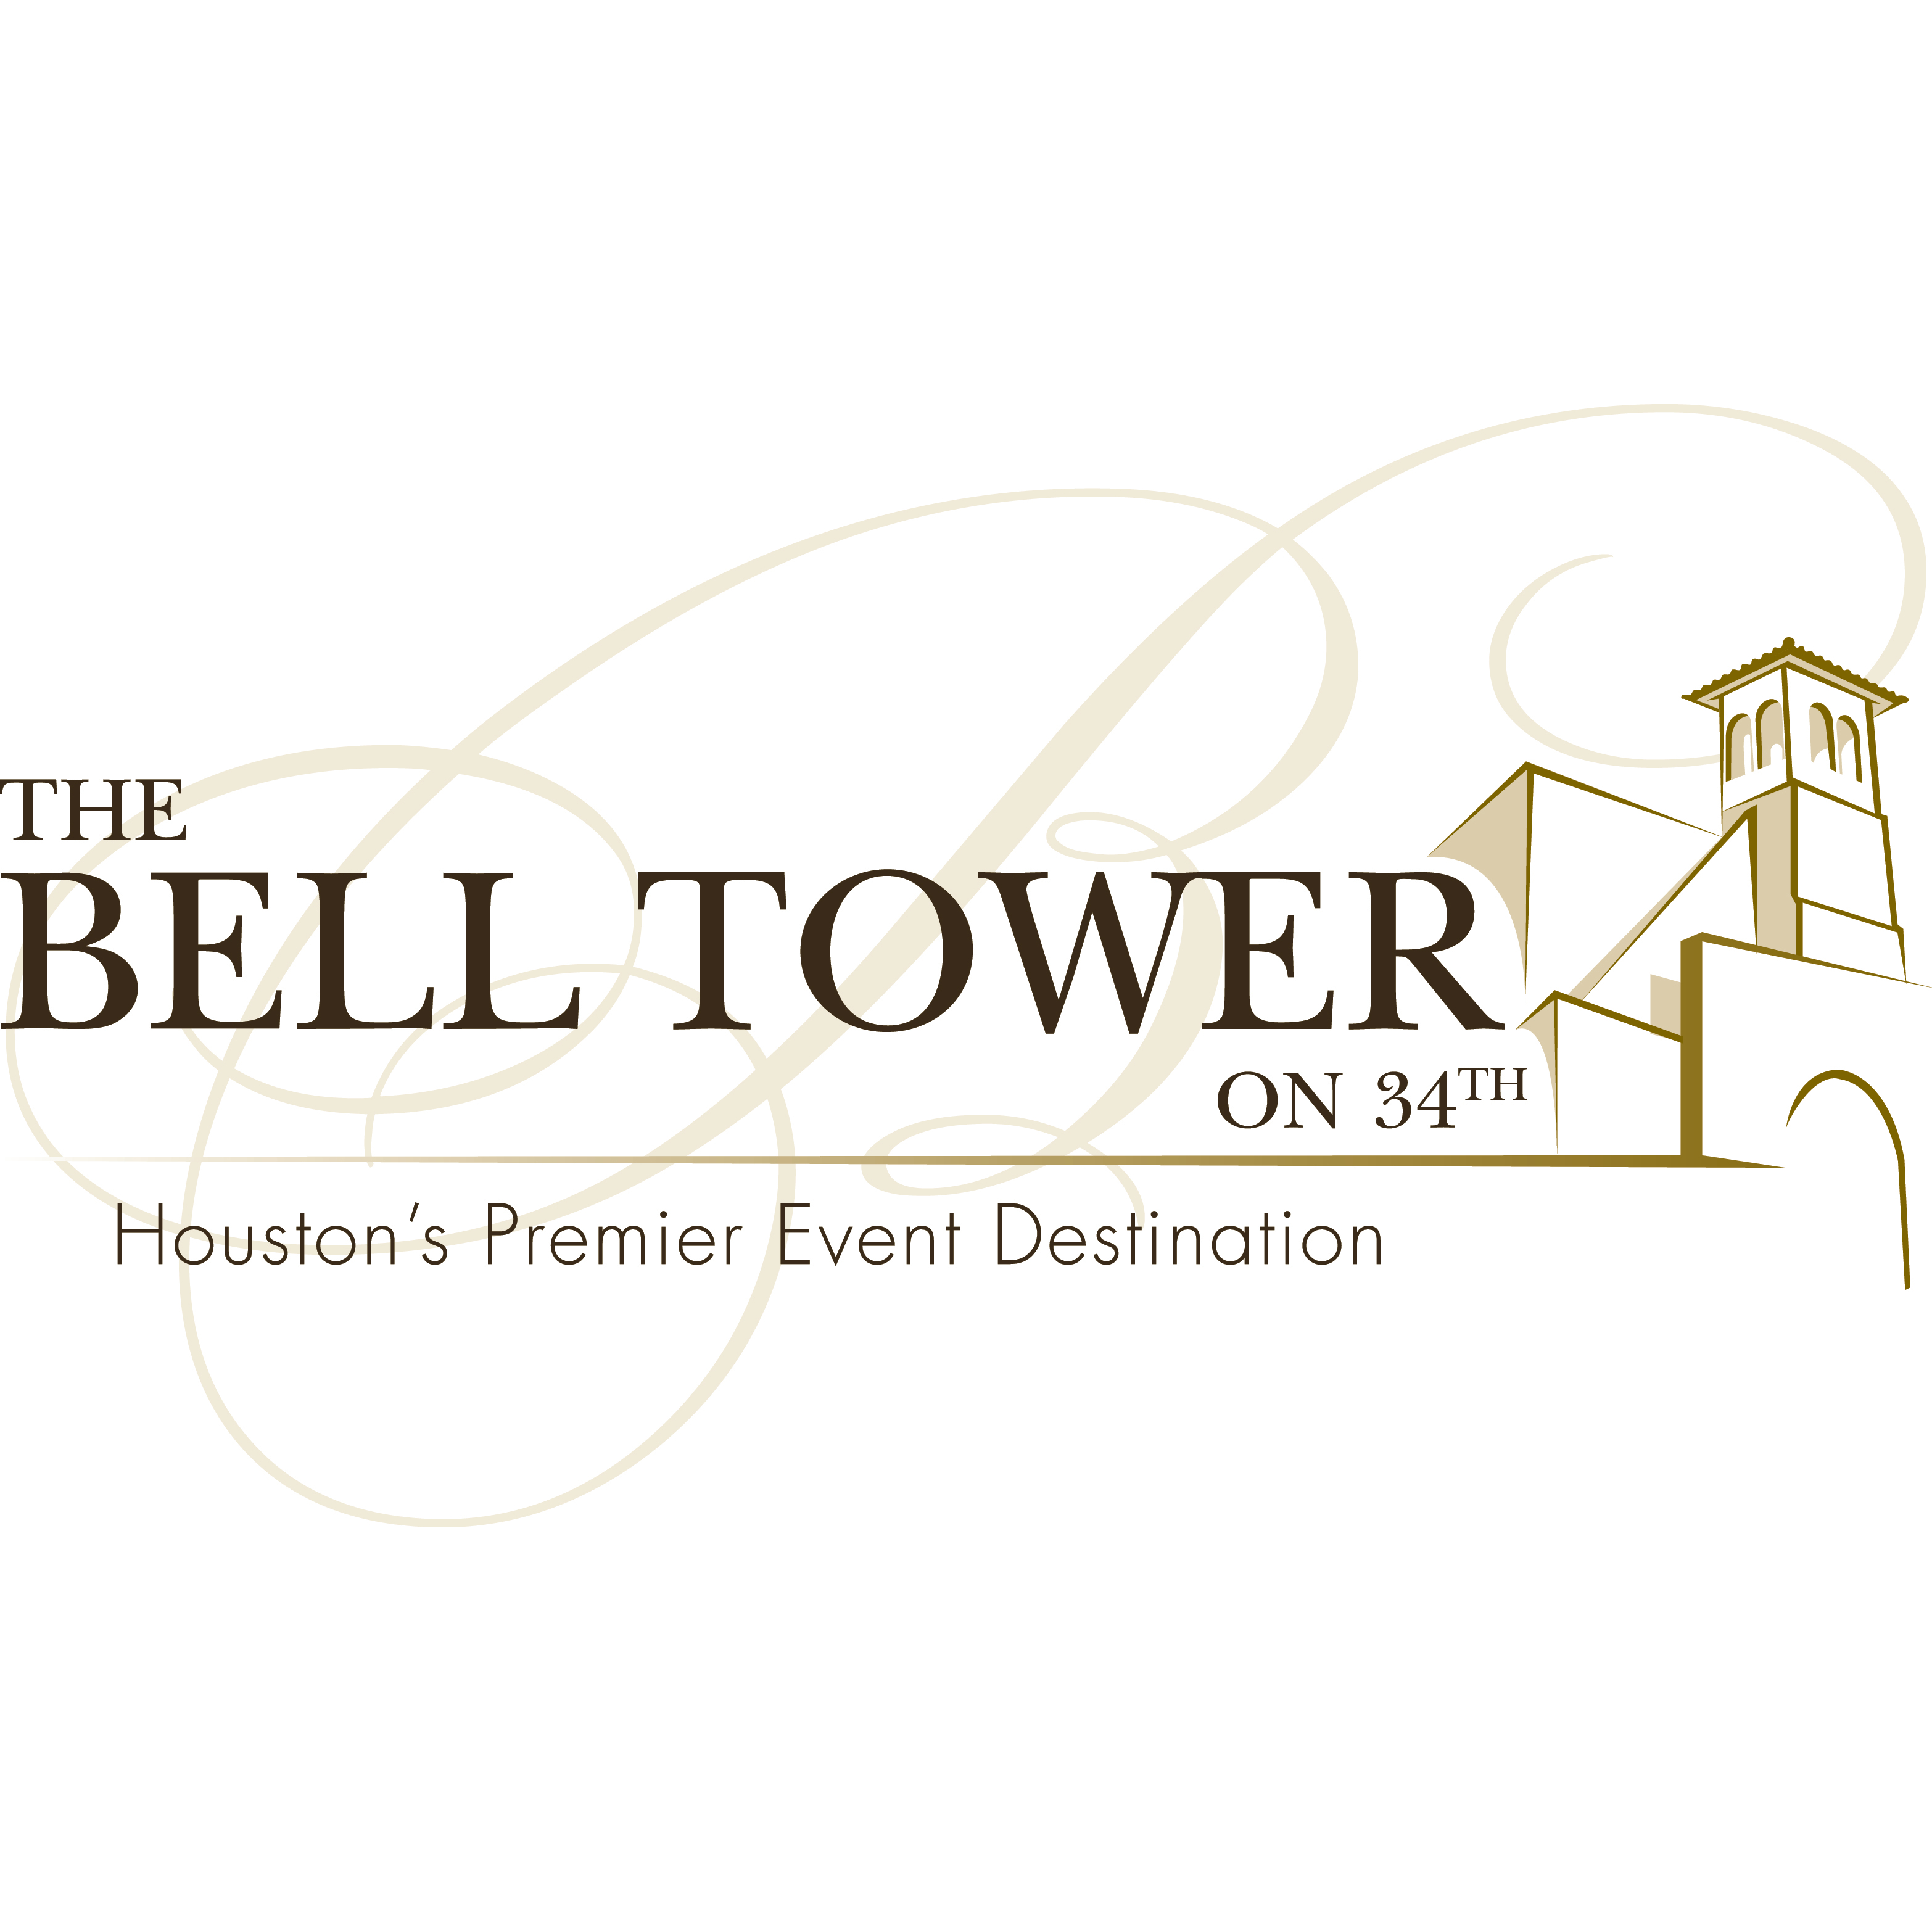 The Bell Tower on 34th image 67